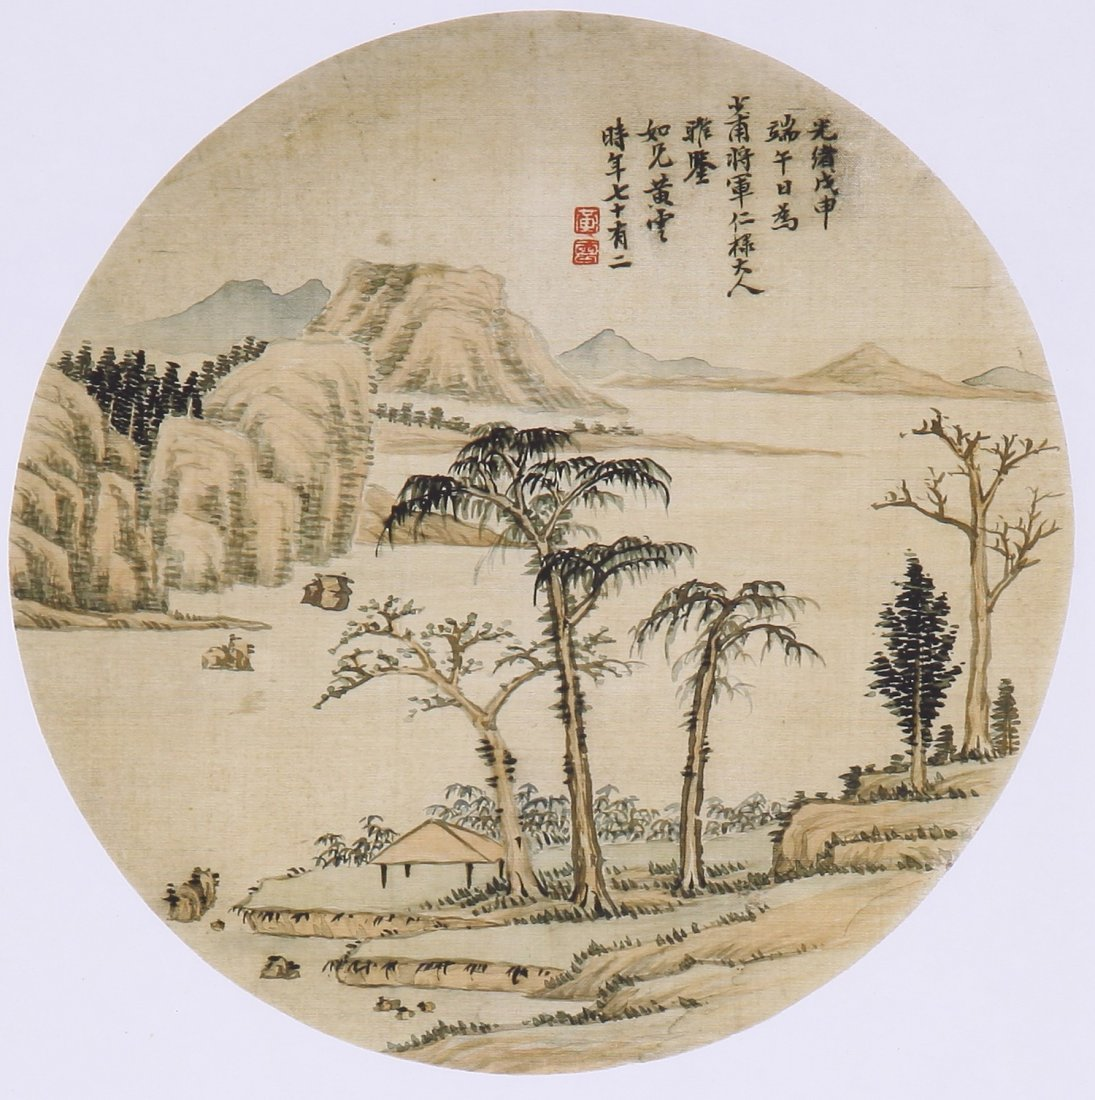 7050: Fine Chinese painting by Huang yun